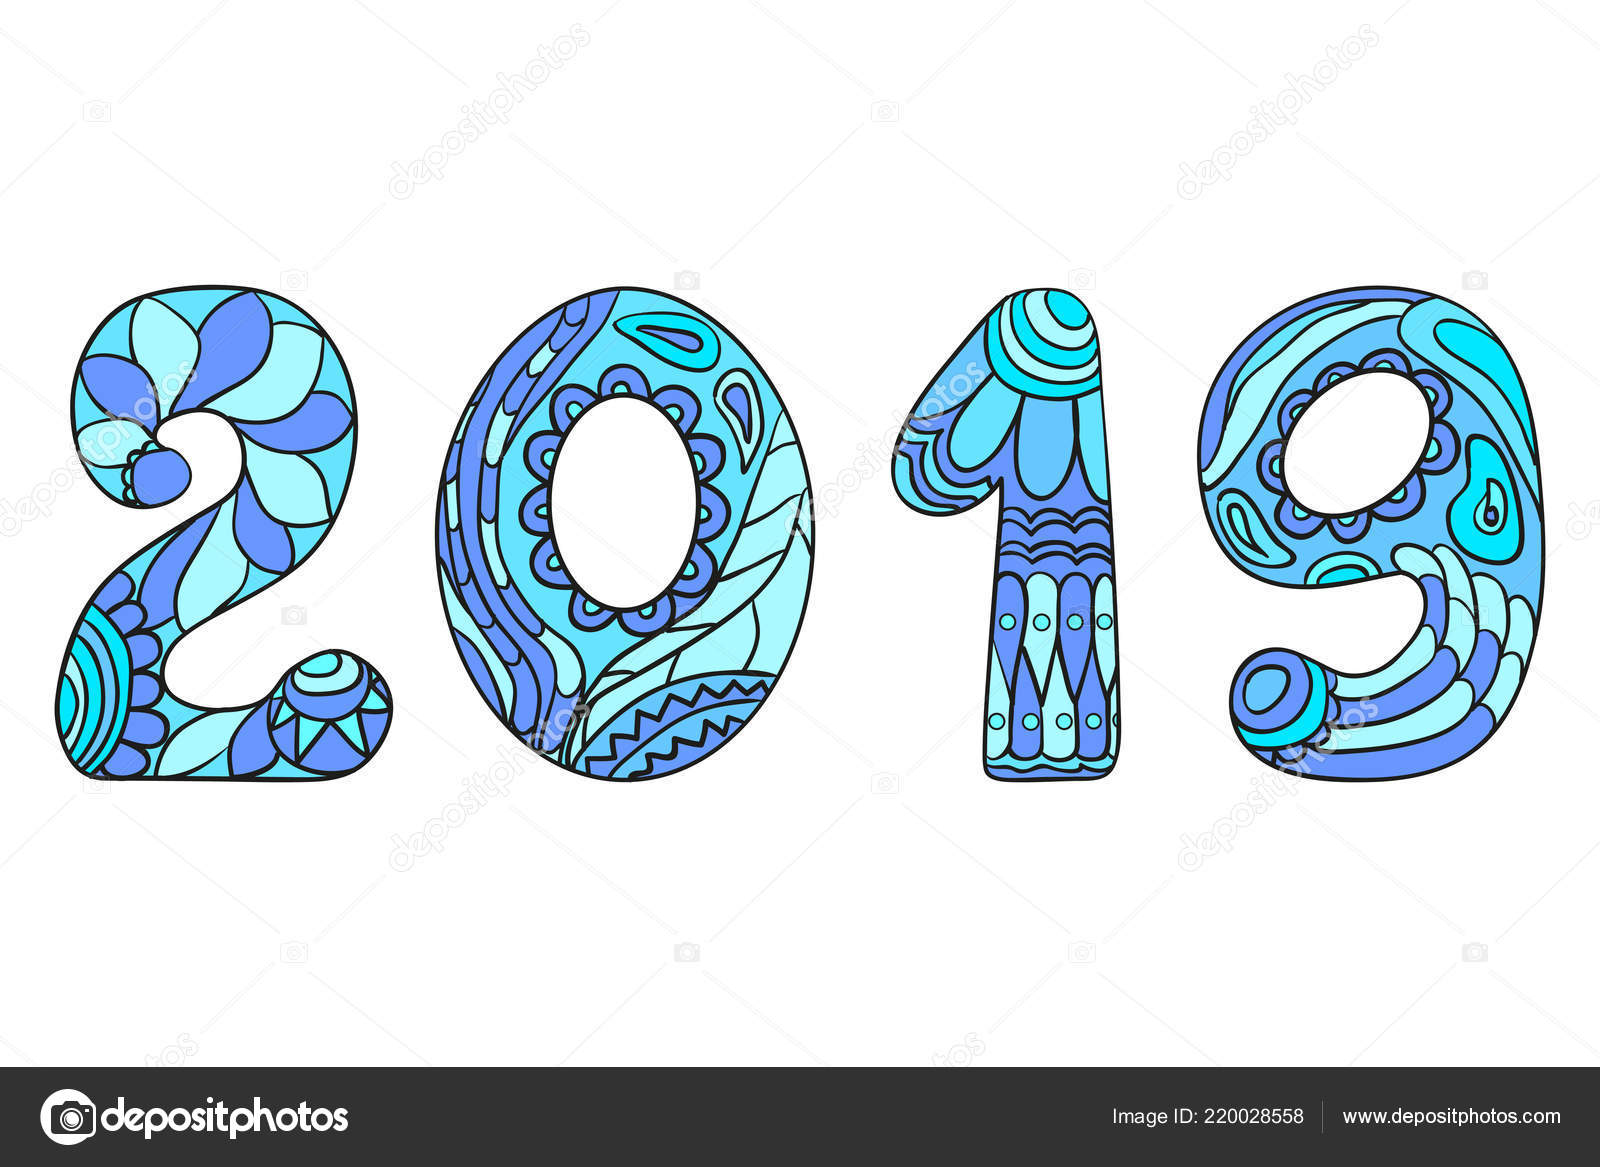 happy new year 2019 hand drawn numbers with abstract patterns on isolation background design for spiritual relaxation for adults line art